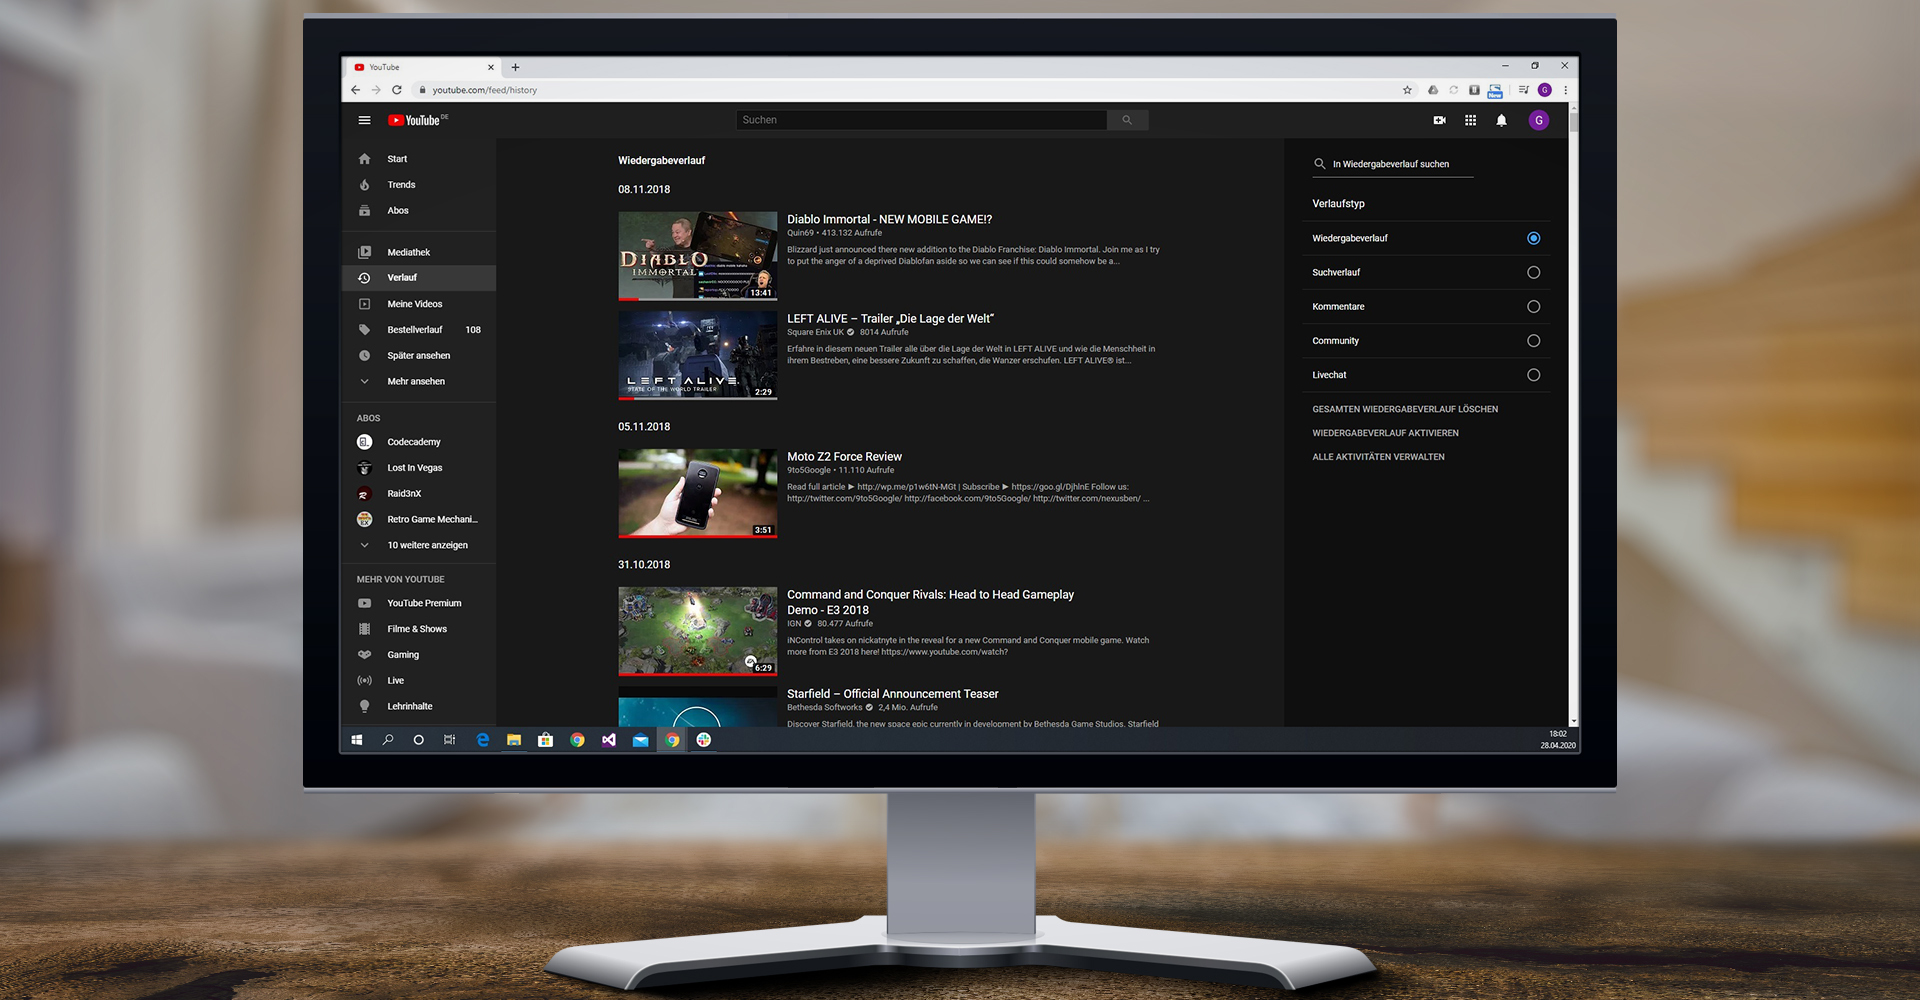 YouTube-Verlaufsansicht unter Windows 10 in Google Chrome als Screenshot auf Monitor